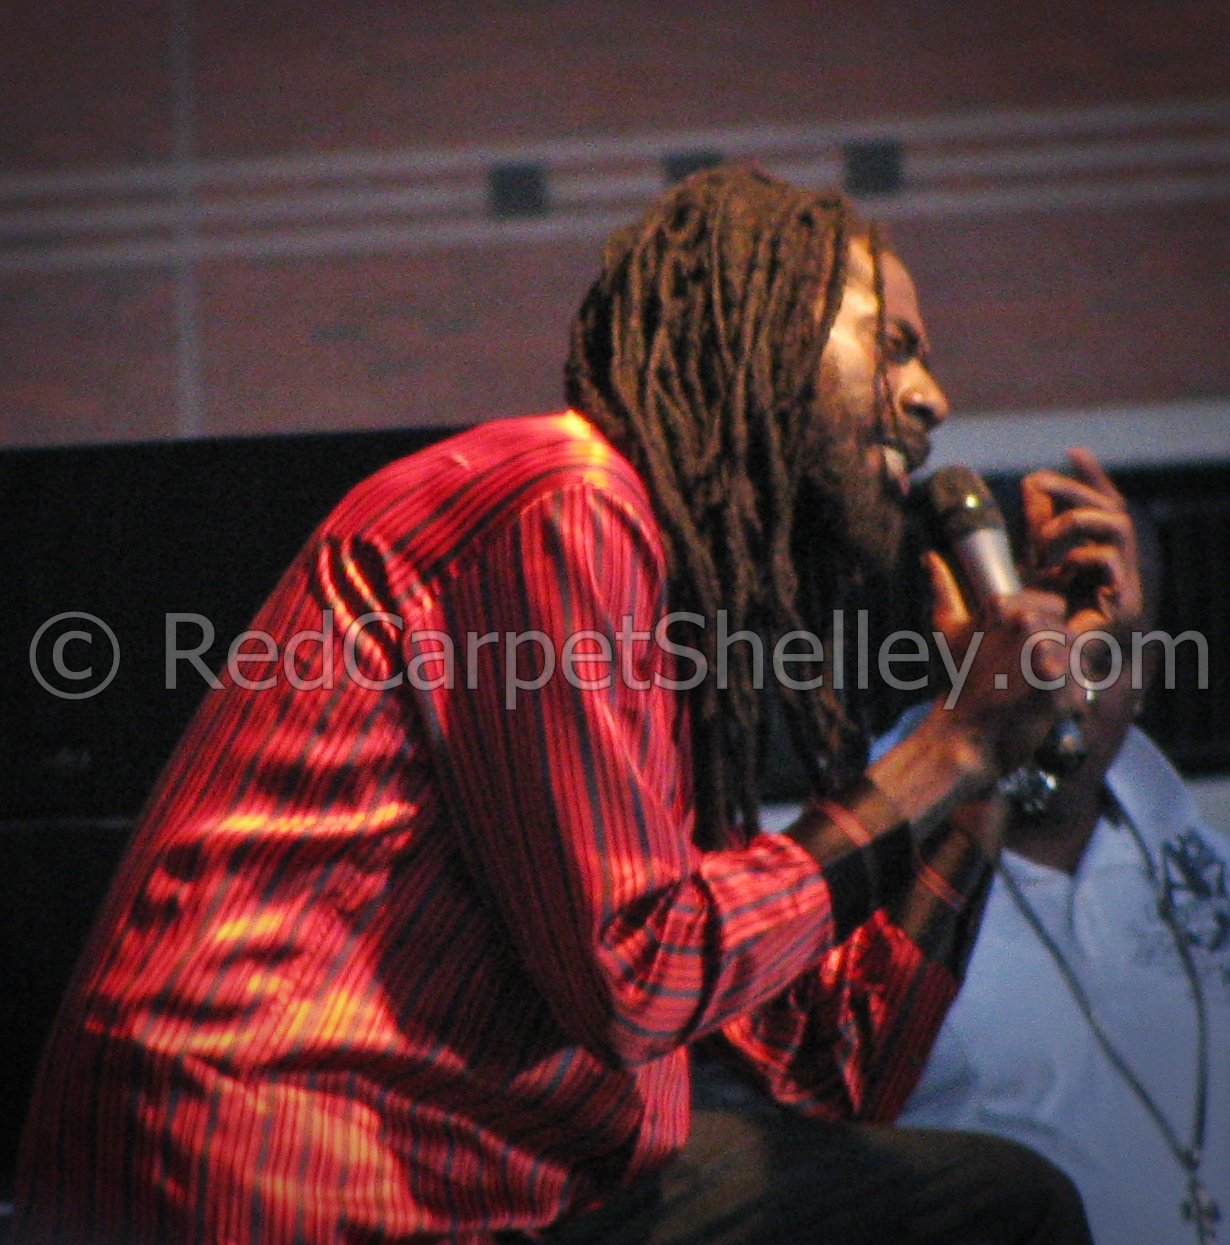 Buju Banton performs at NJ Reggaefest 2009. PHOTO: redcarpetshelley.com